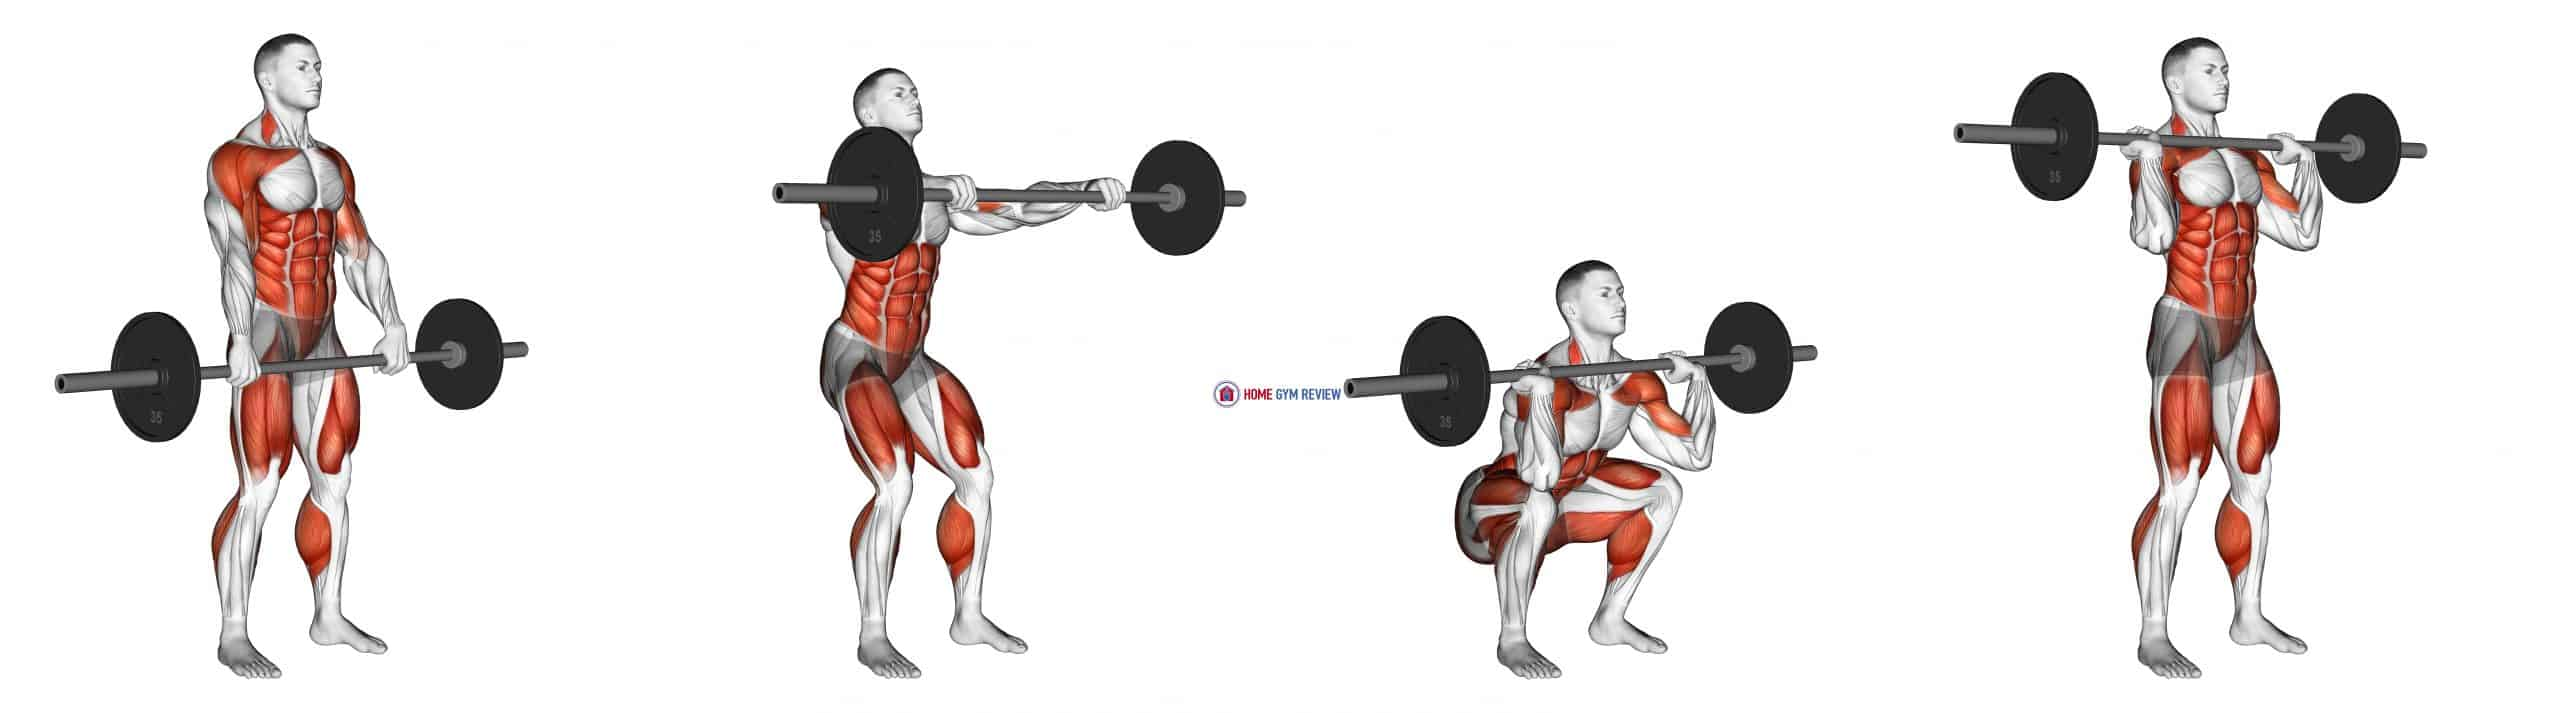 Barbell Hang Clean